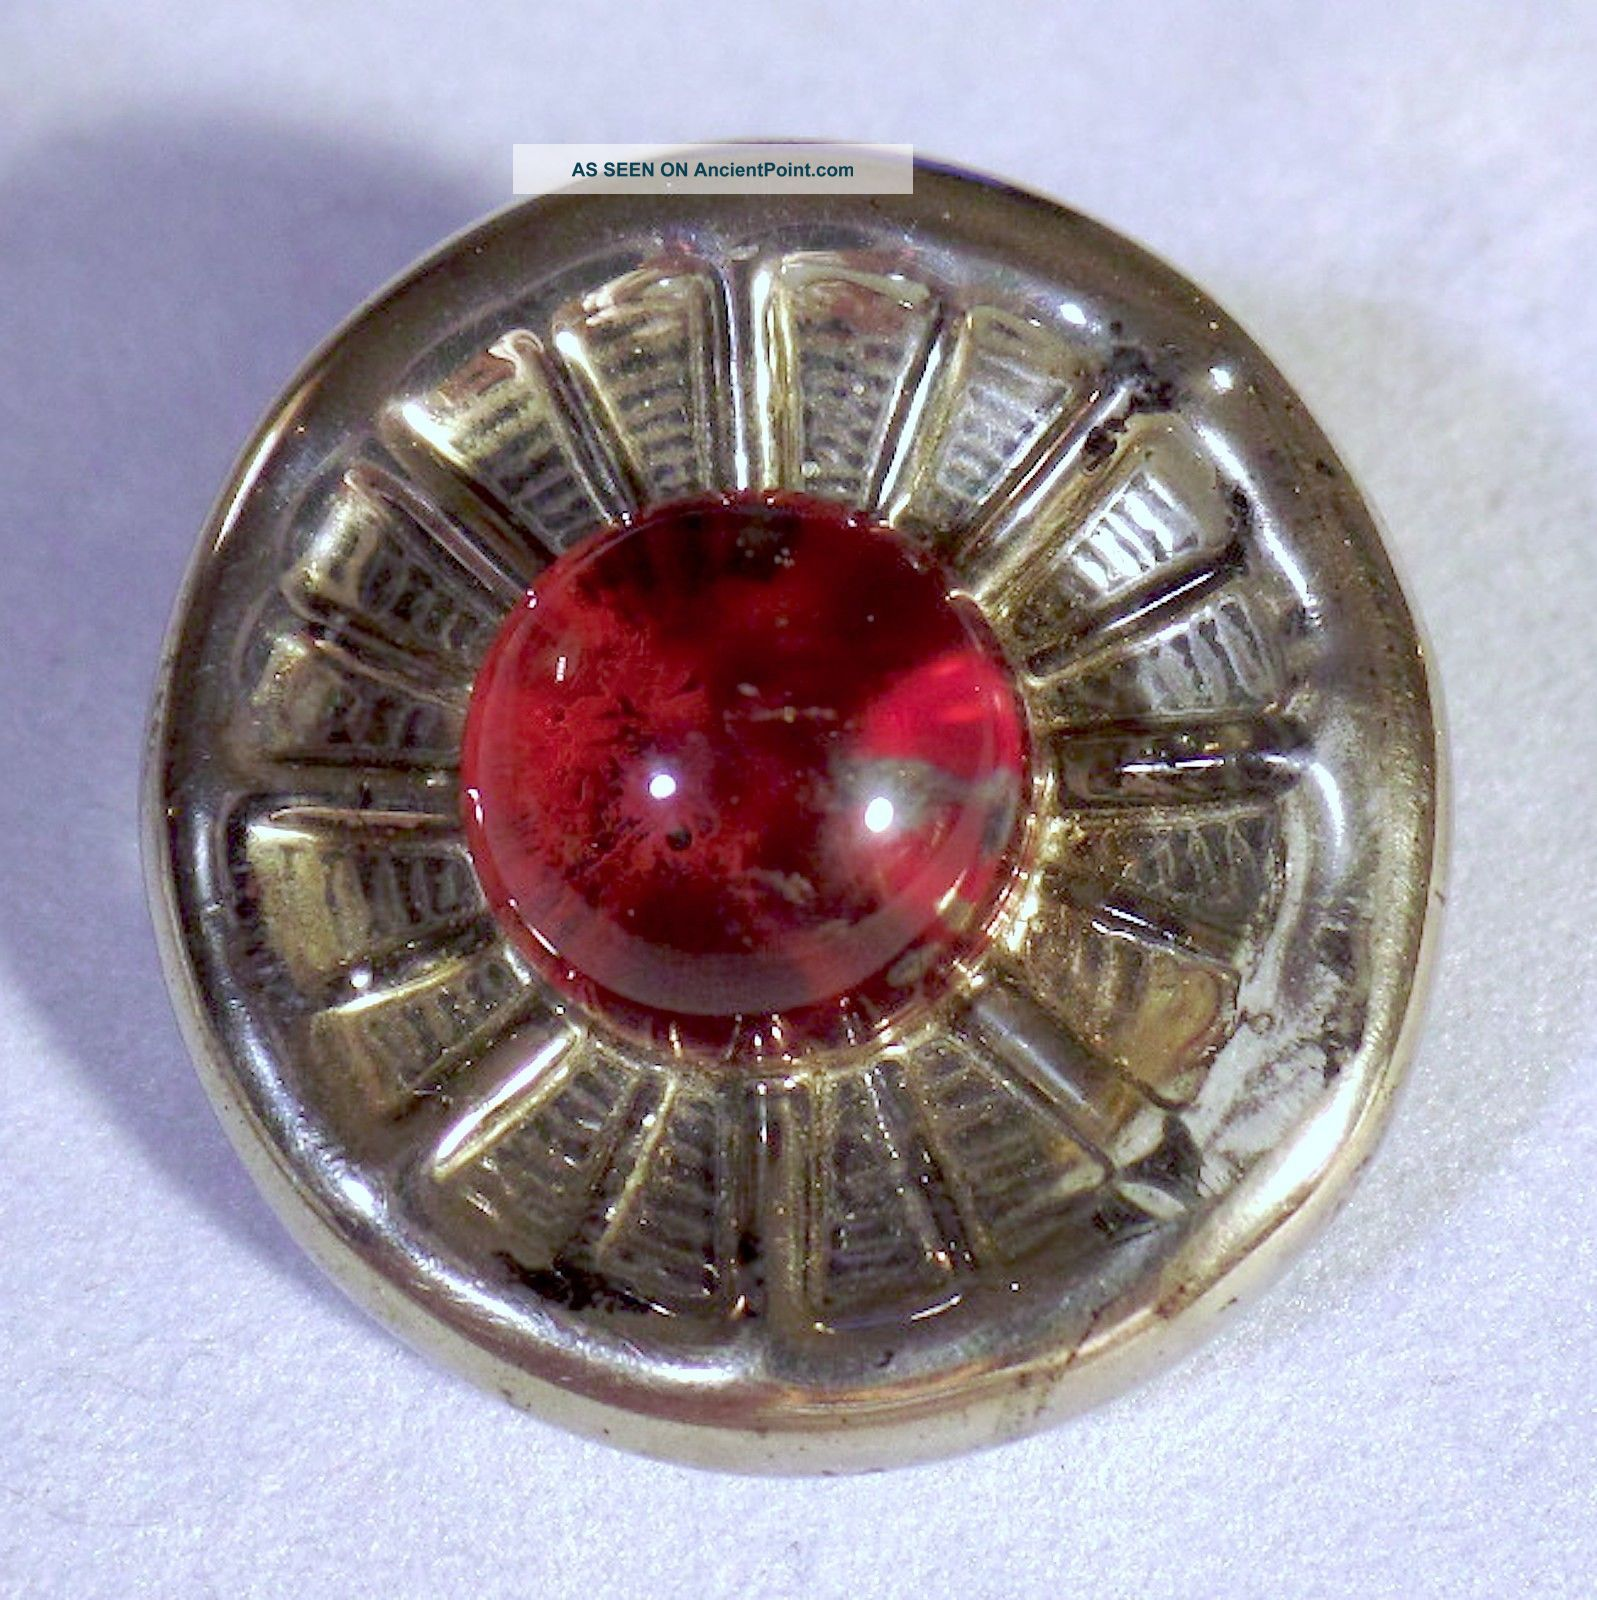 Very Cool Bimini - Type British Wwii Era Glass Button In Silver And Red Colors Buttons photo